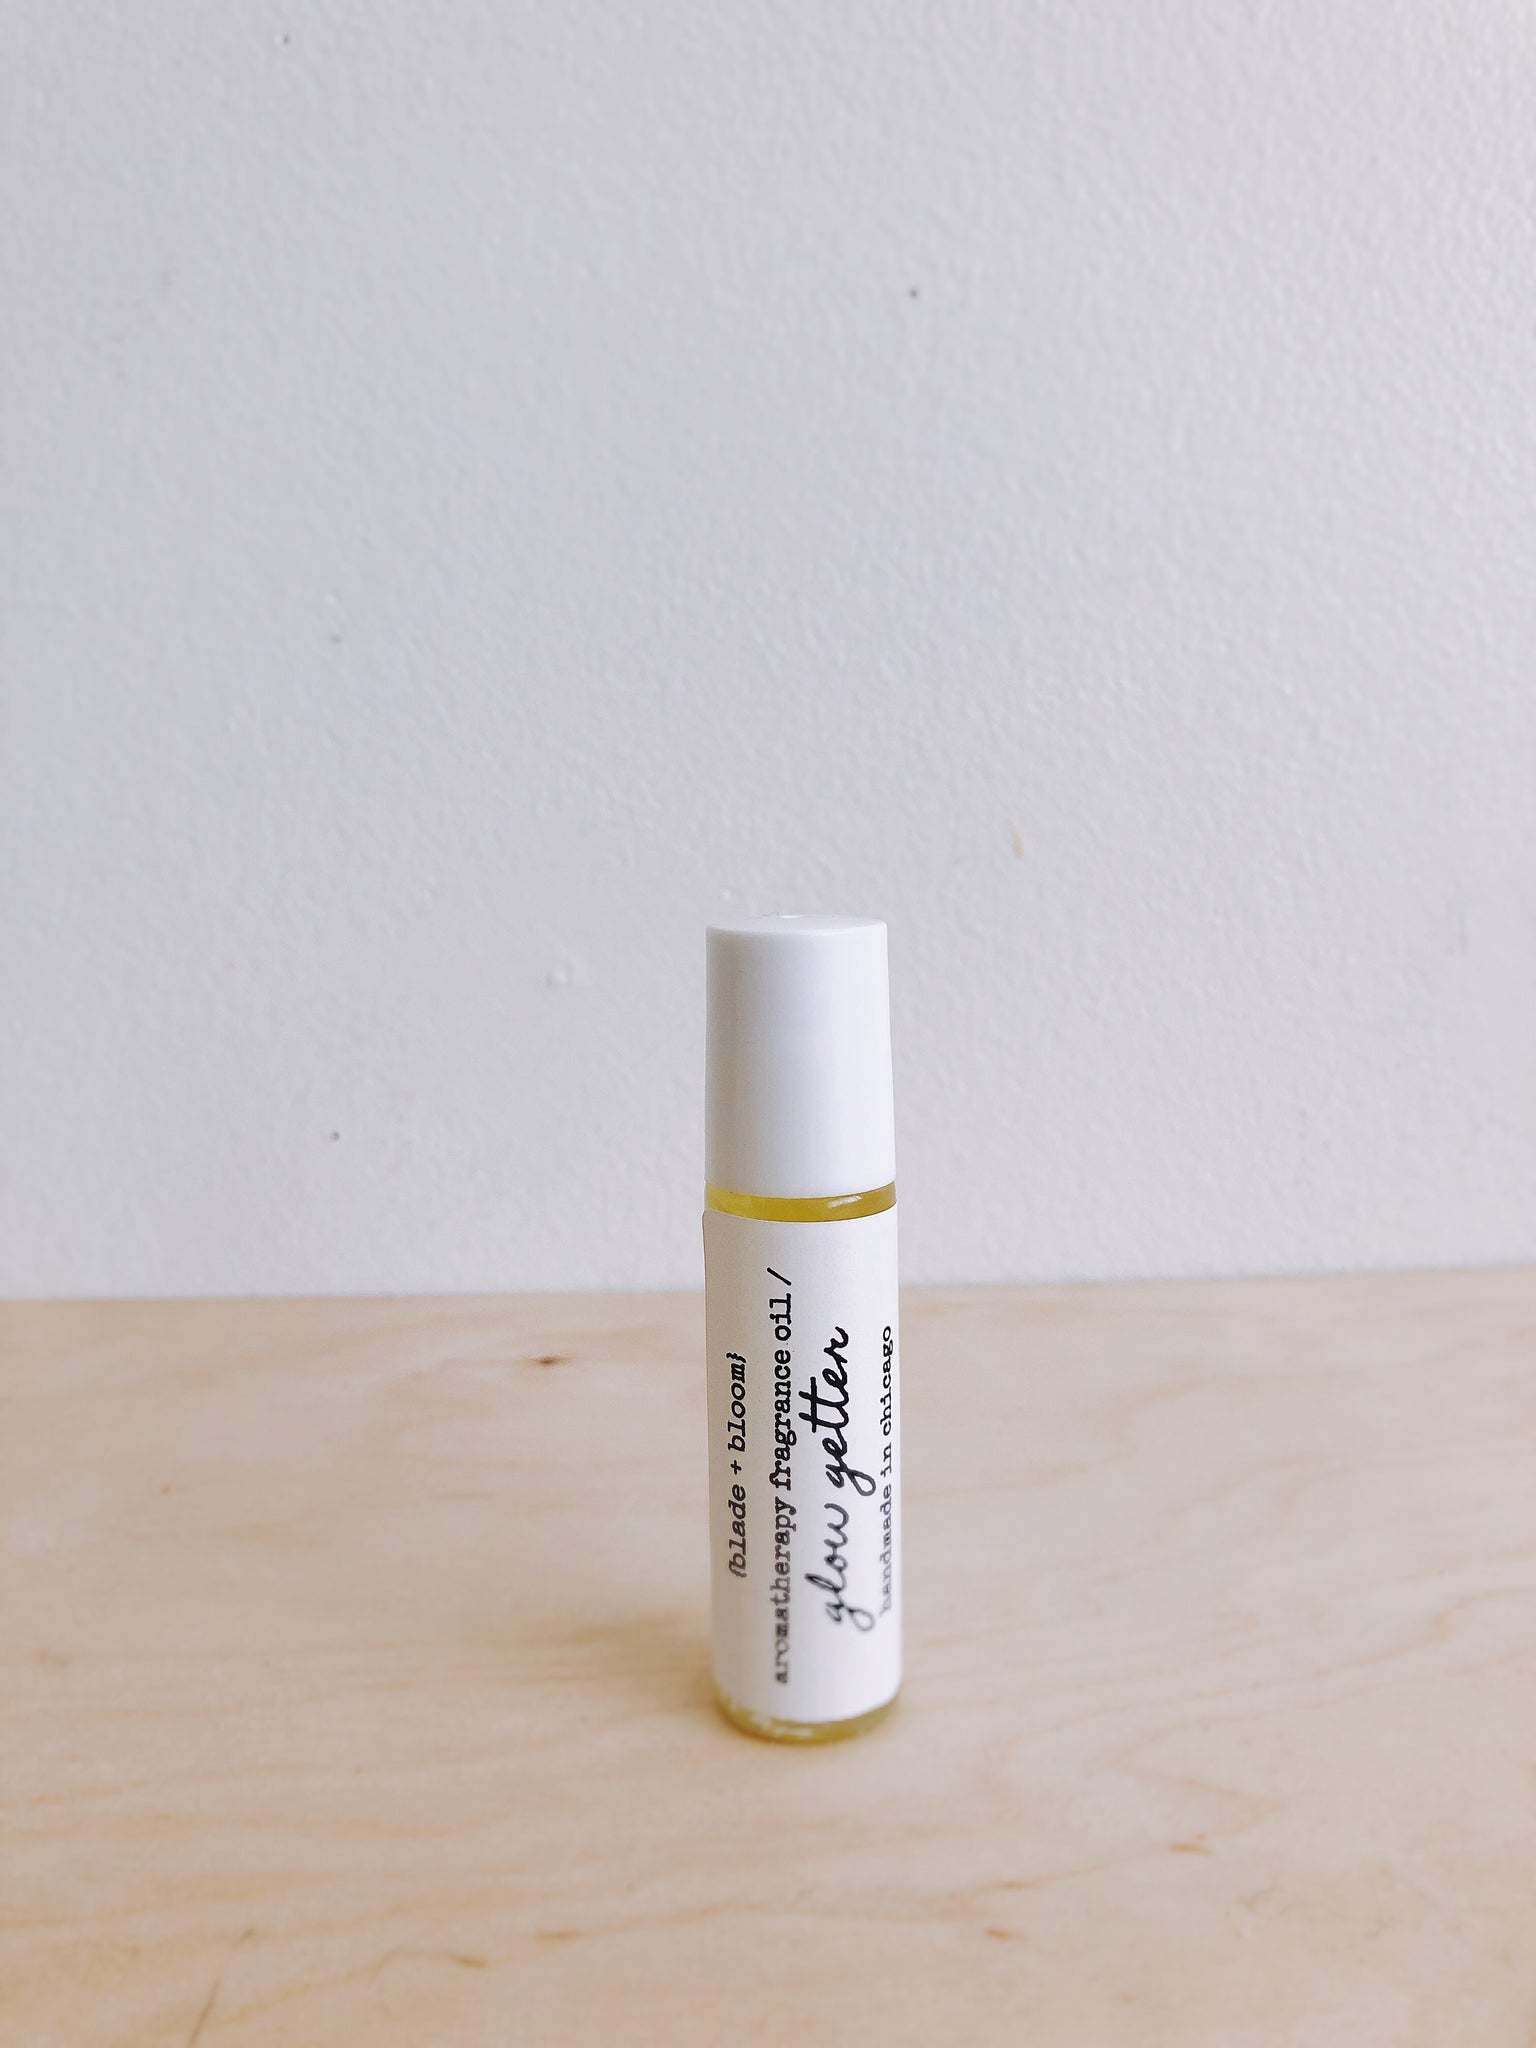 aromatherapy fragrance oil / glow getter